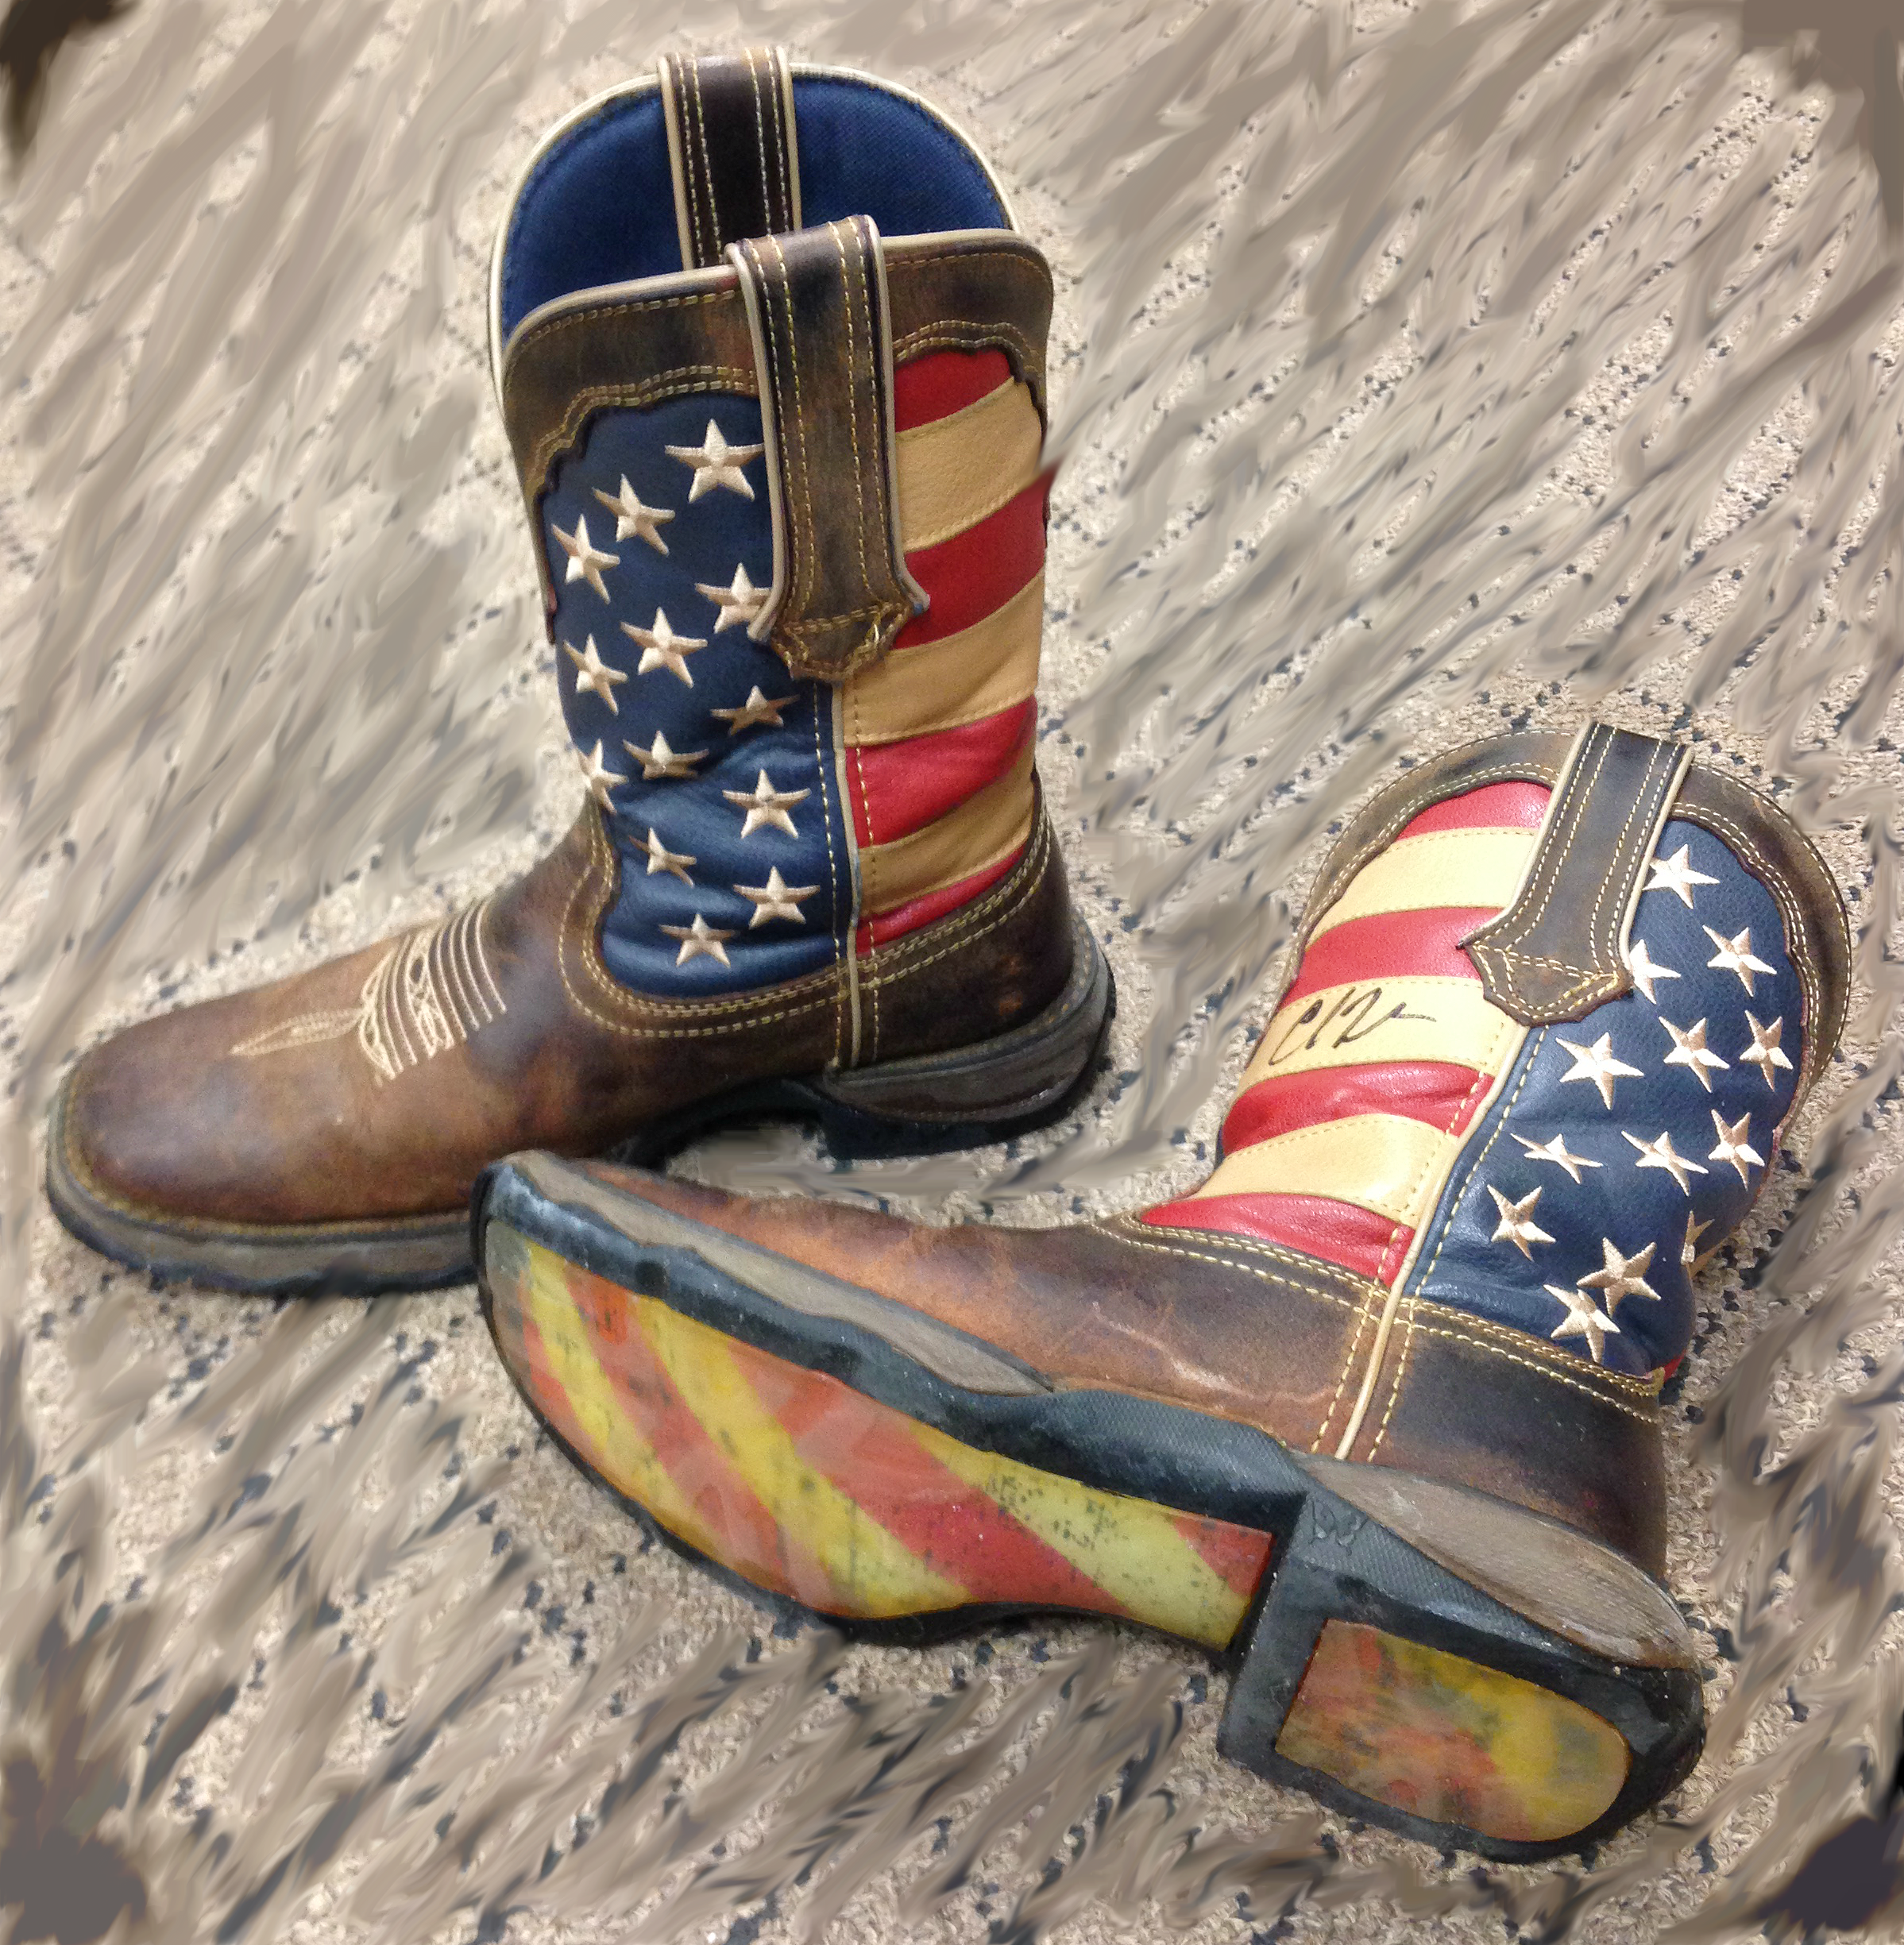 9ab7f3baf8f File:Patriotic Cowboy Boots.png - Wikimedia Commons